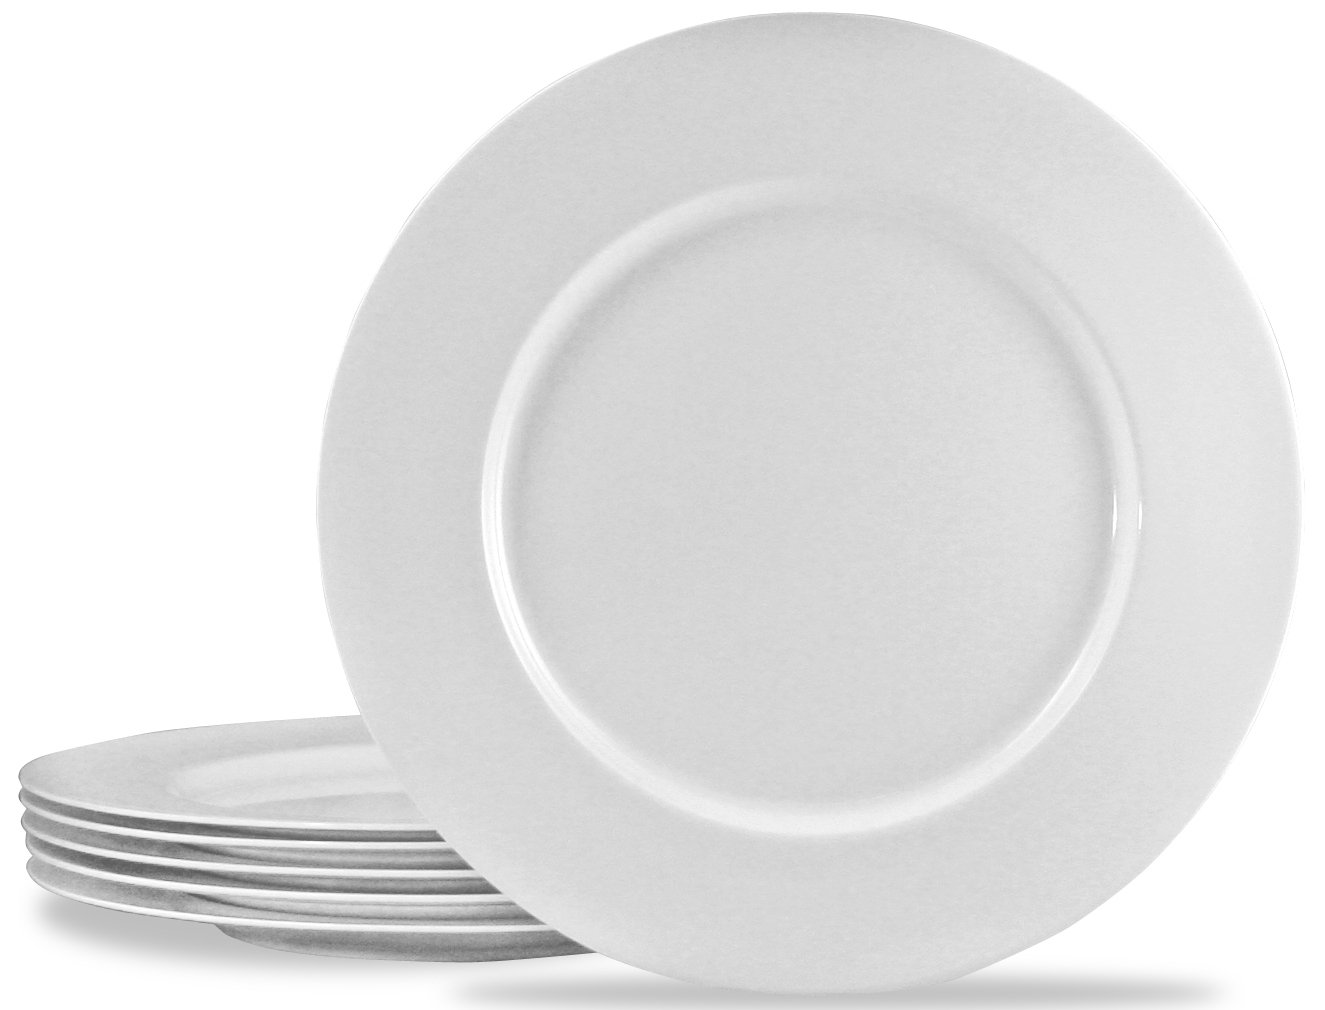 Amazon.com Calypso Basics by Reston Lloyd Melamine Salad Plate Set of 6 White Kitchen u0026 Dining  sc 1 st  Amazon.com : melamine salad plates - pezcame.com